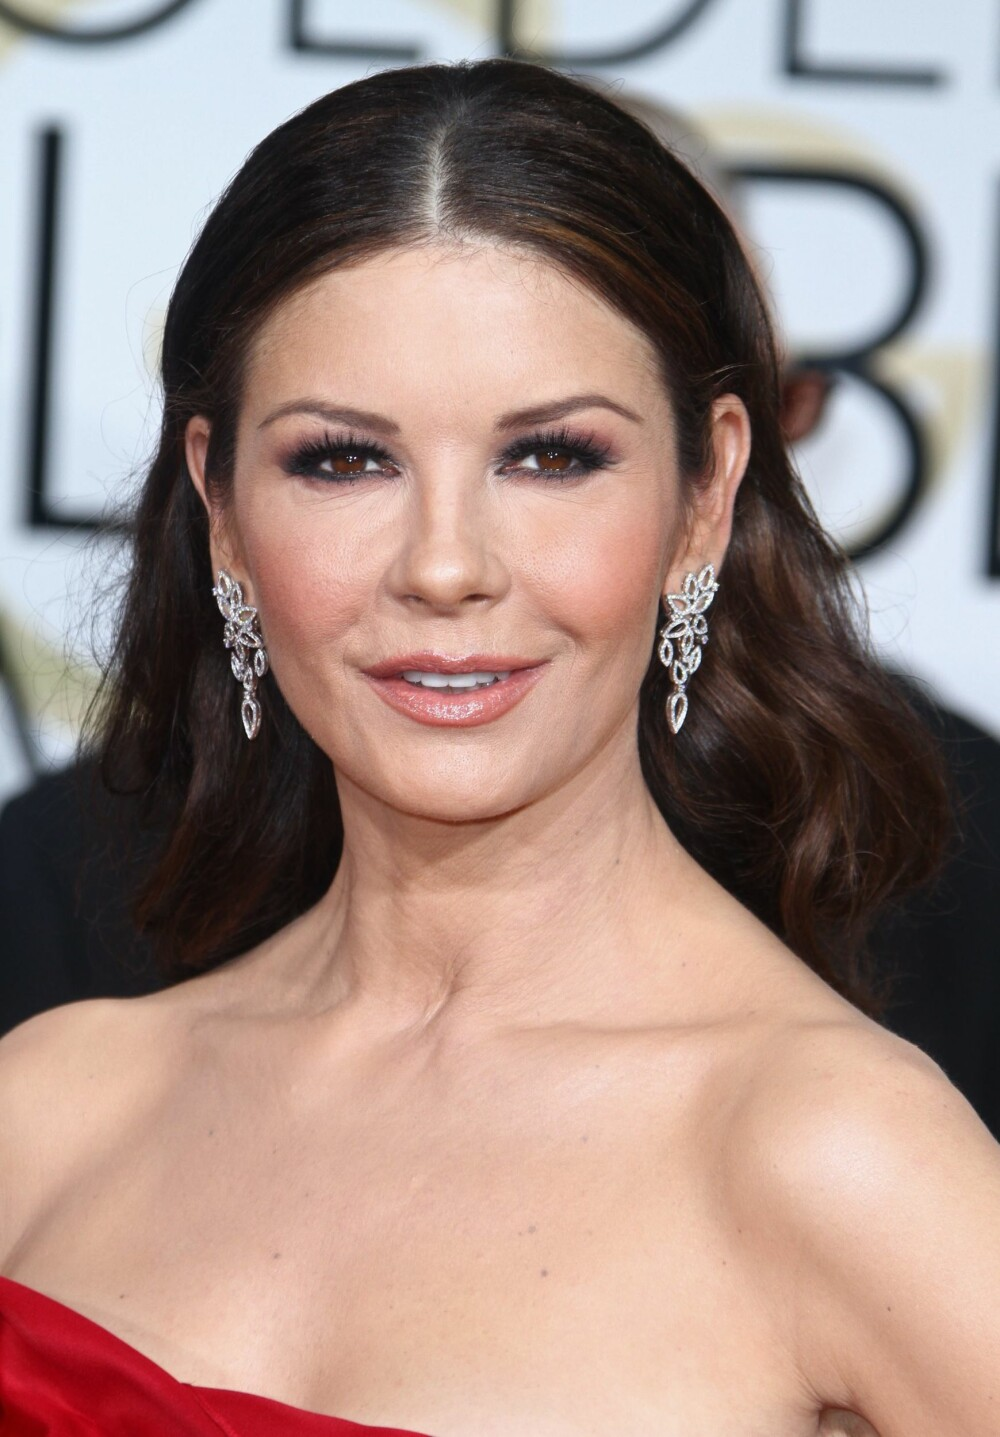 CATHERINE ZETA JONES (45): Har diagnosen bipolar II